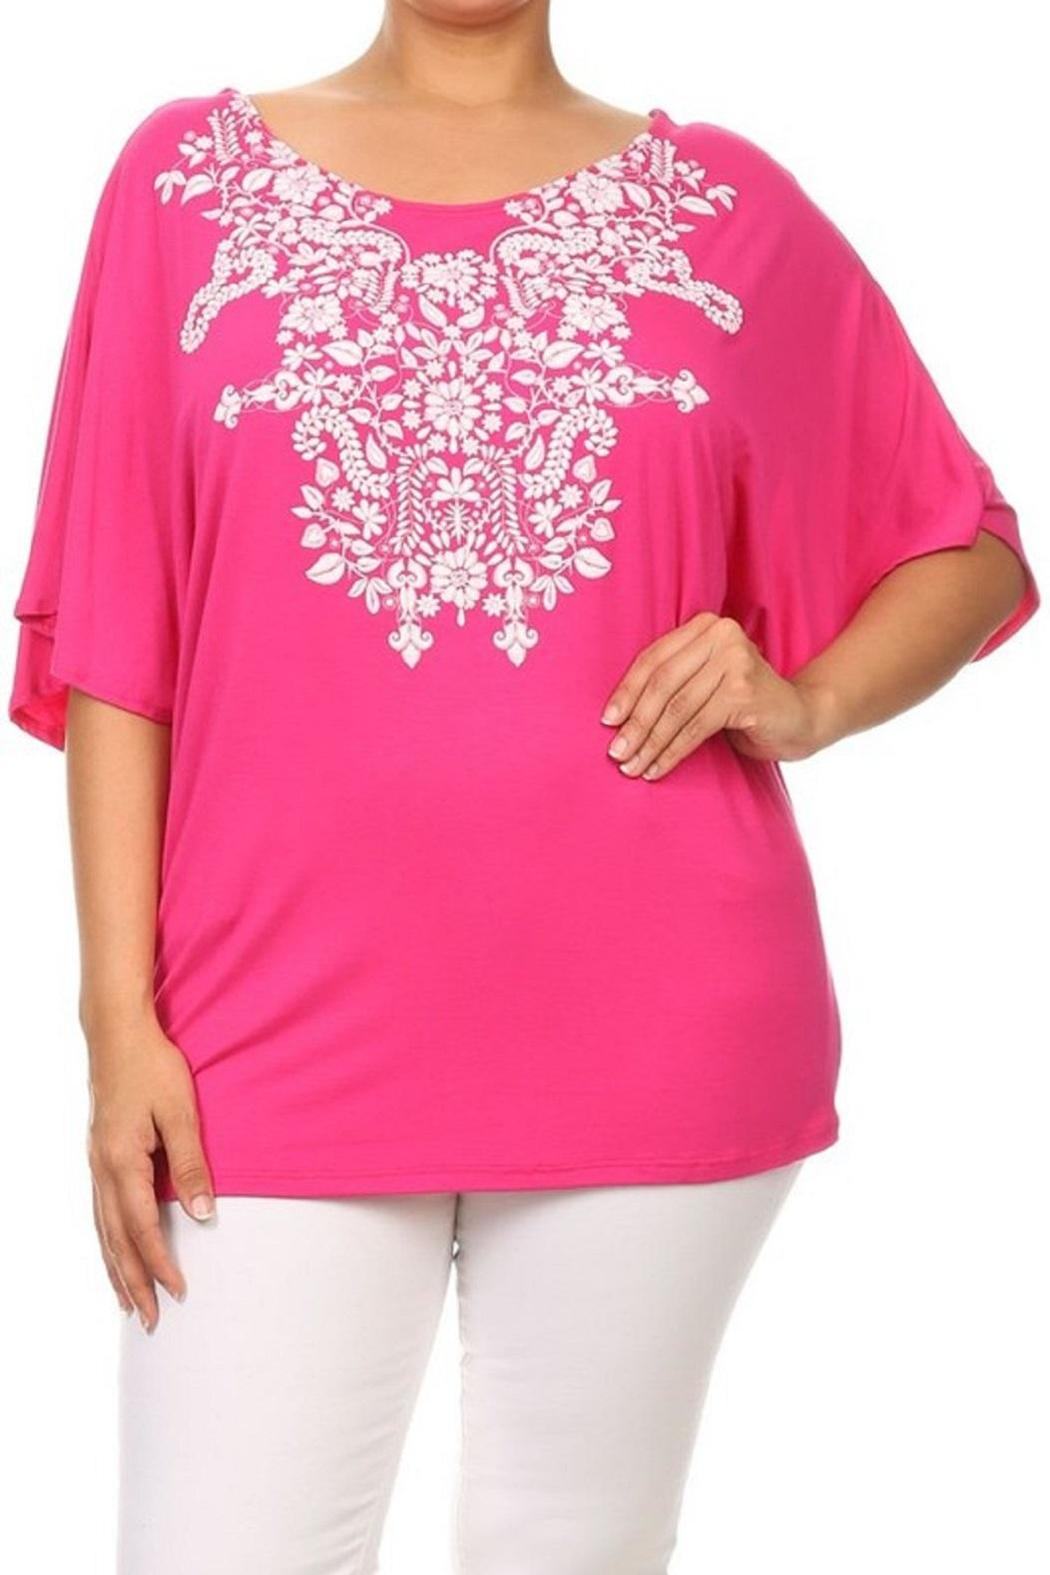 Moa Floral Embossed Top - Main Image